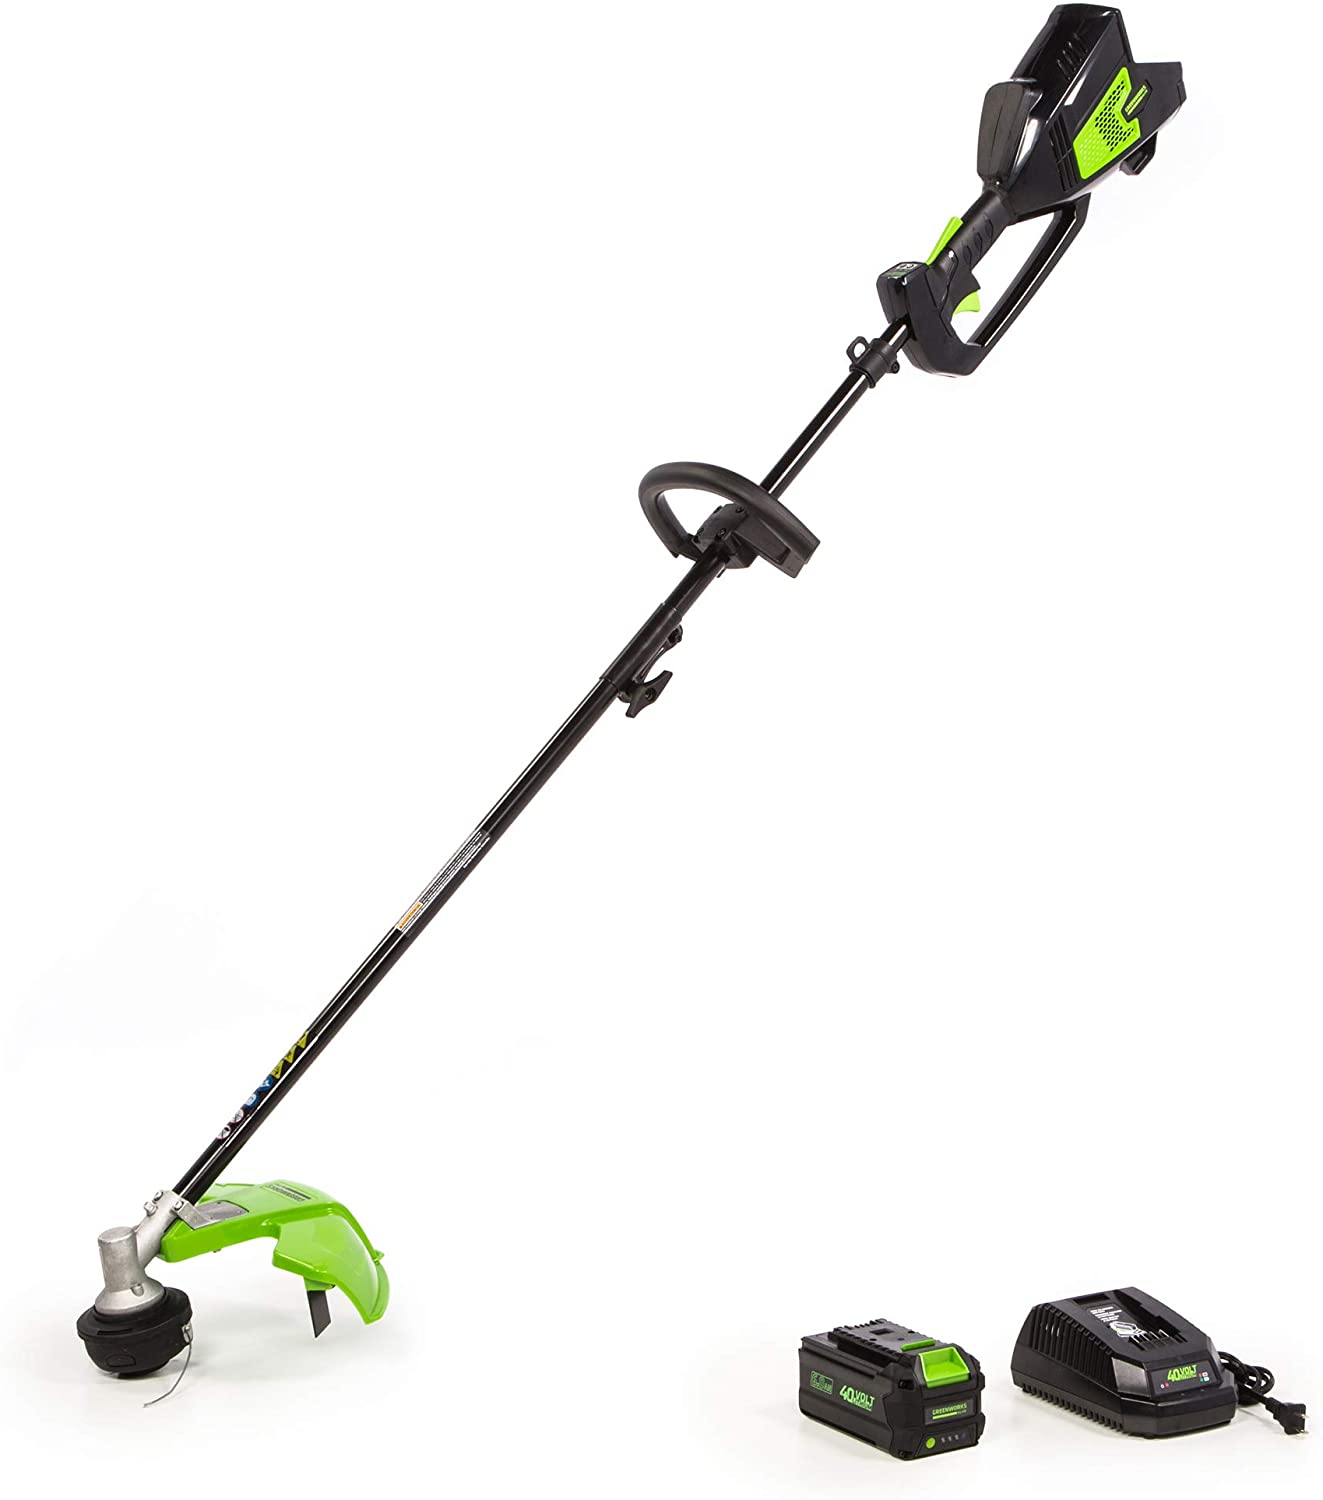 Greenworks 14-Inch 40V (Attachment Capable) String Trimmer